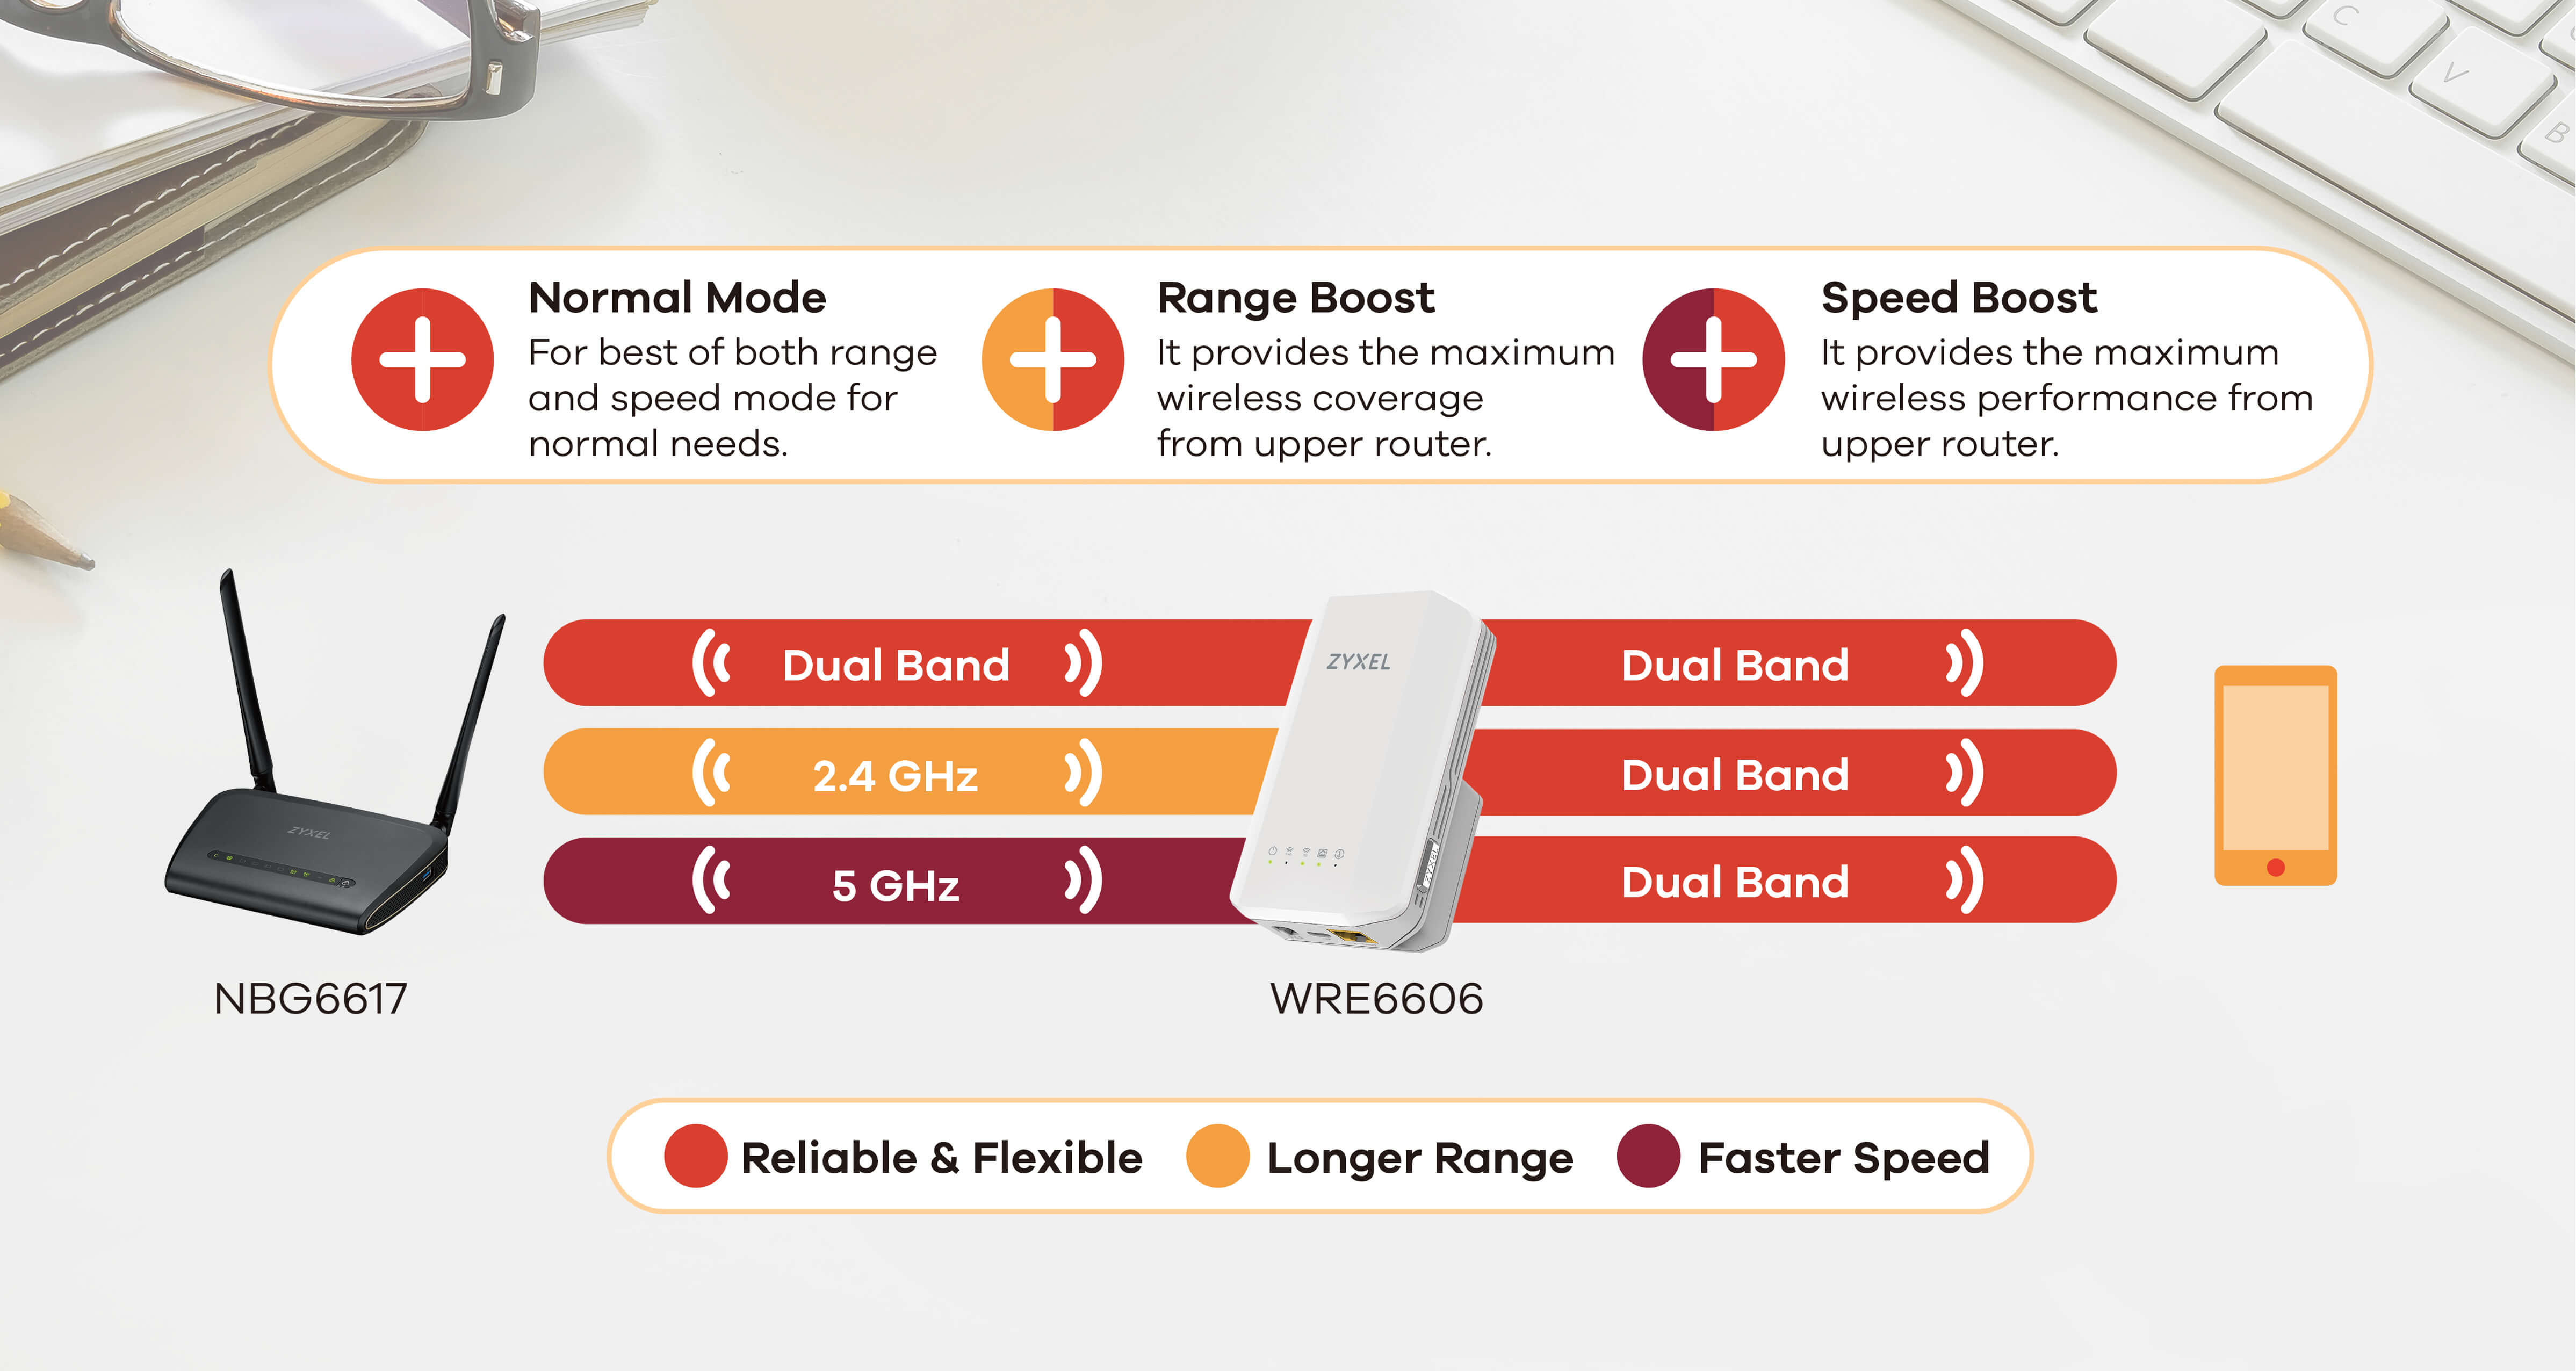 WRE6606, AC1300 MU-MIMO Dual-Band Wireless Range Extender